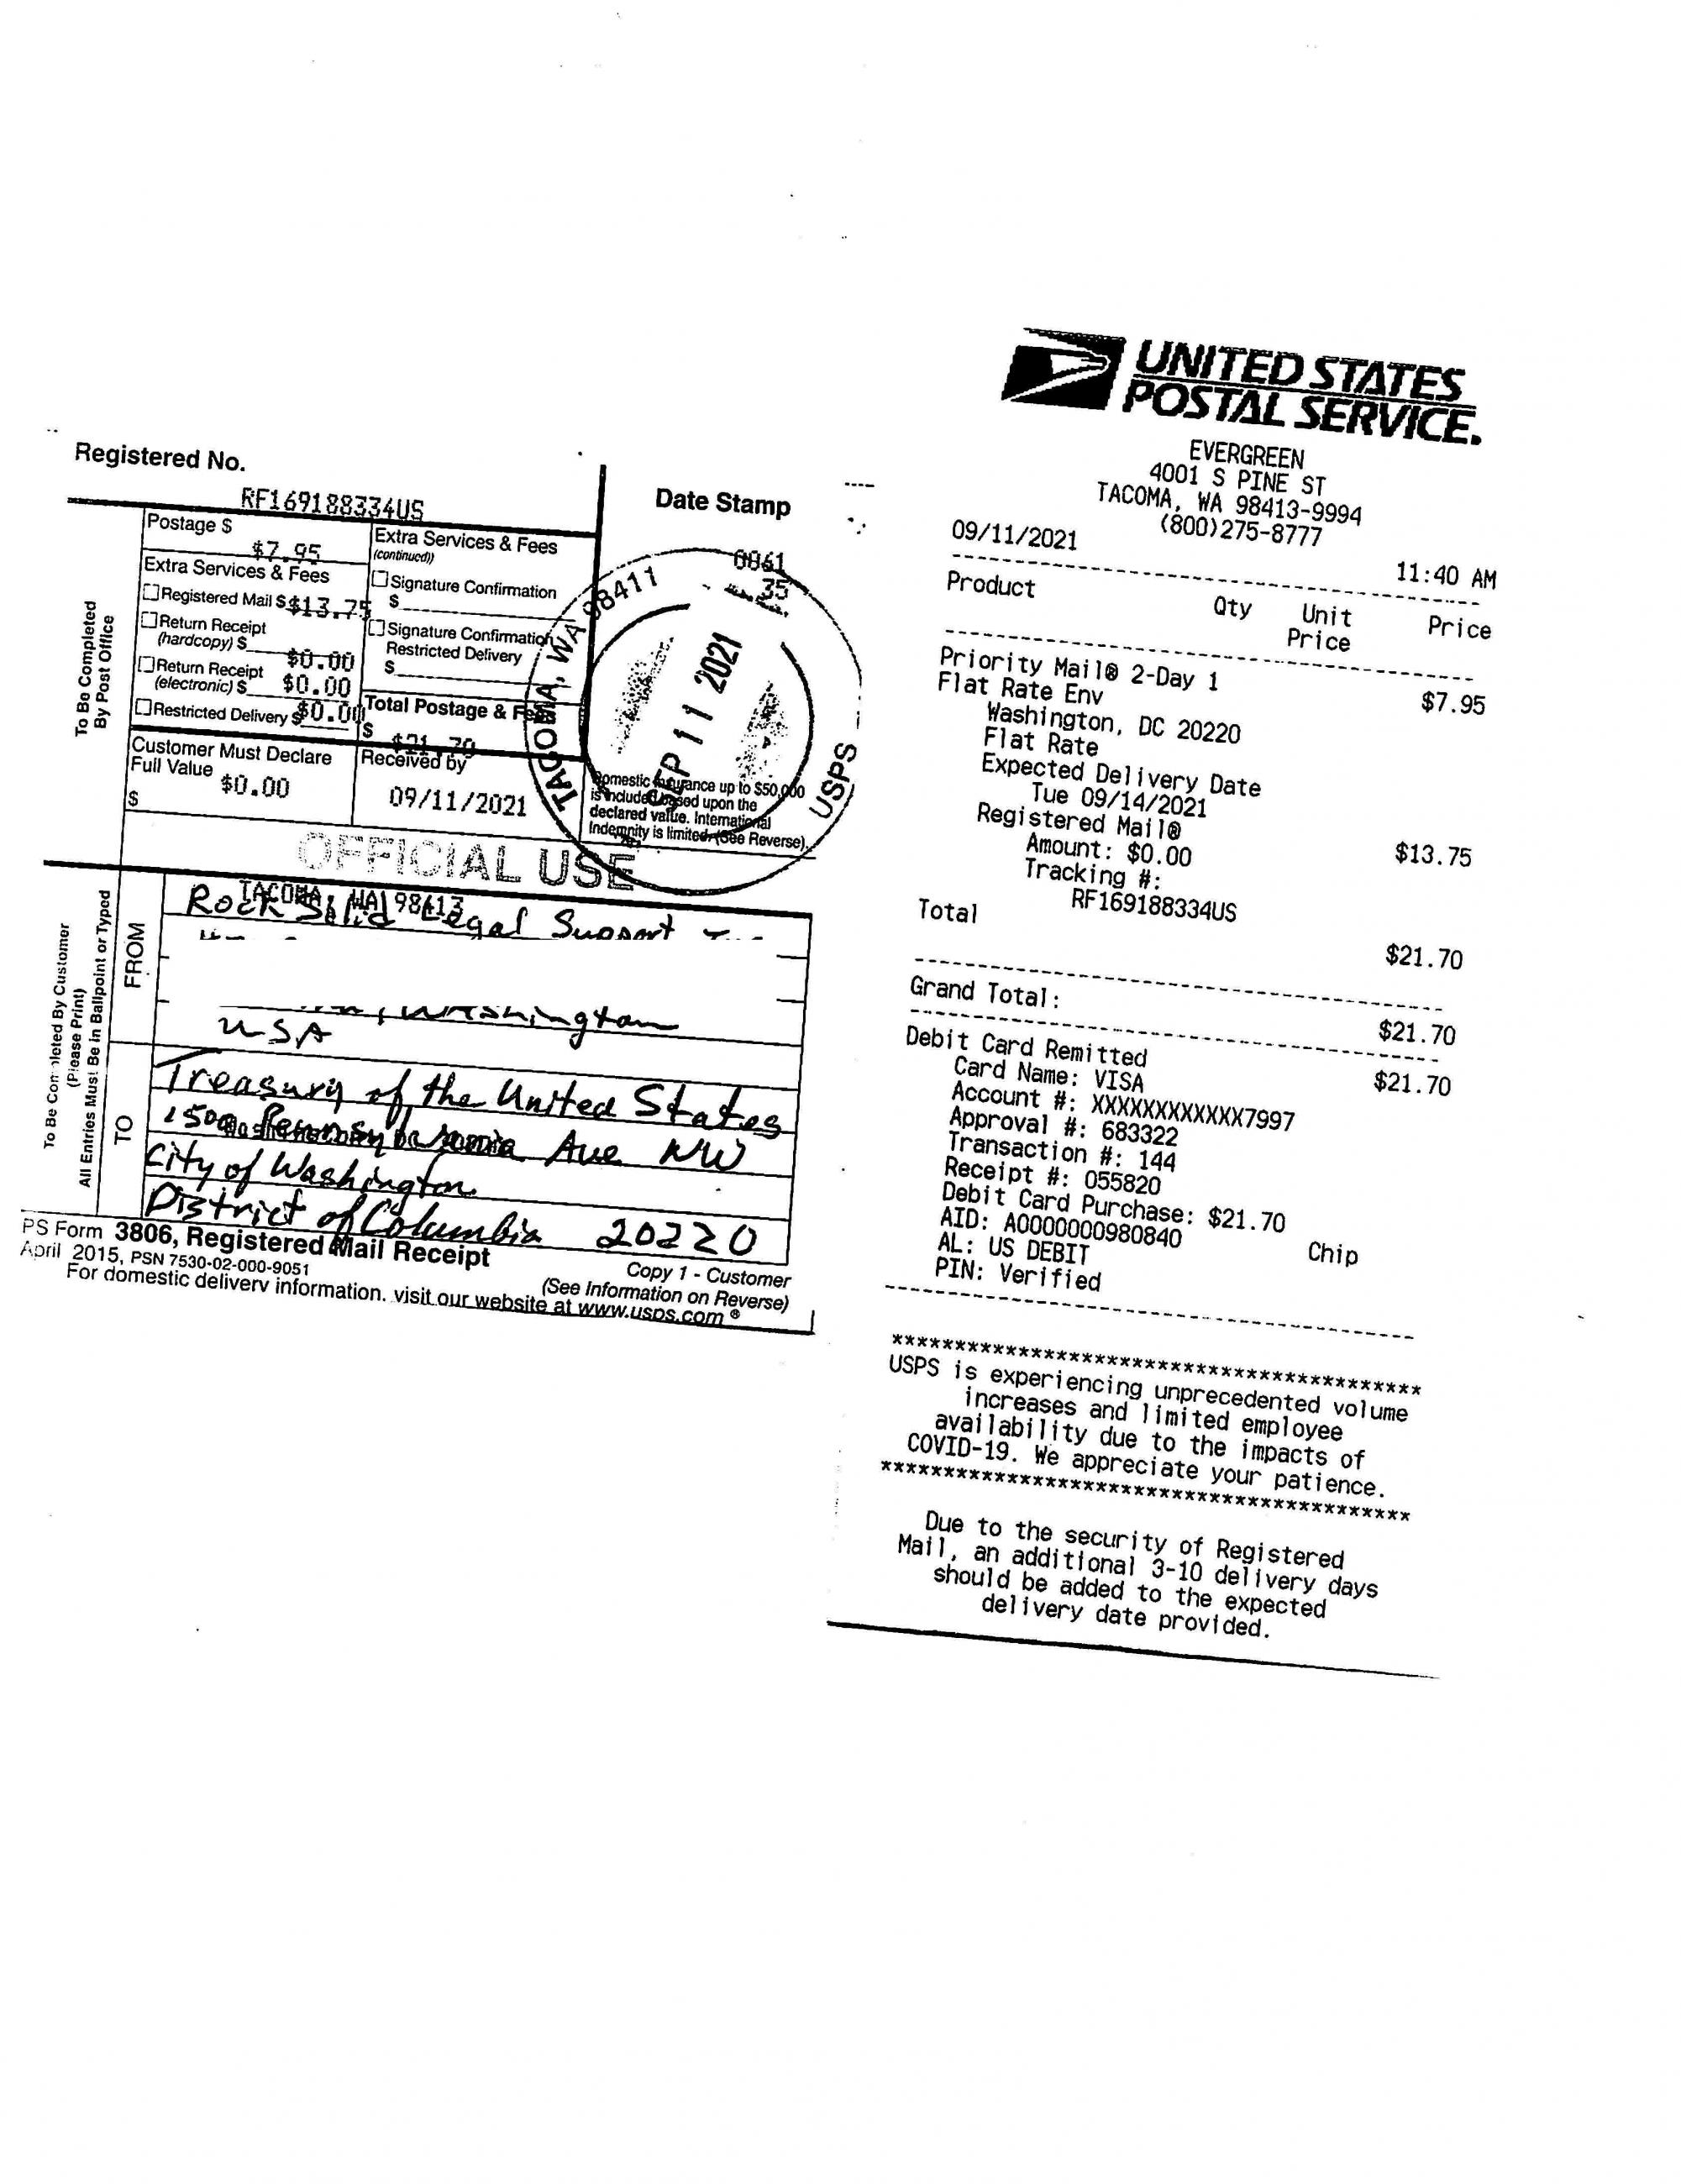 Name:  Final Judgment MERRILL - PRINTING AND SHIPPING RECEIPTS - 2021_09_11_11_56_30_Page_2.jpg Views: 39 Size:  460.3 KB